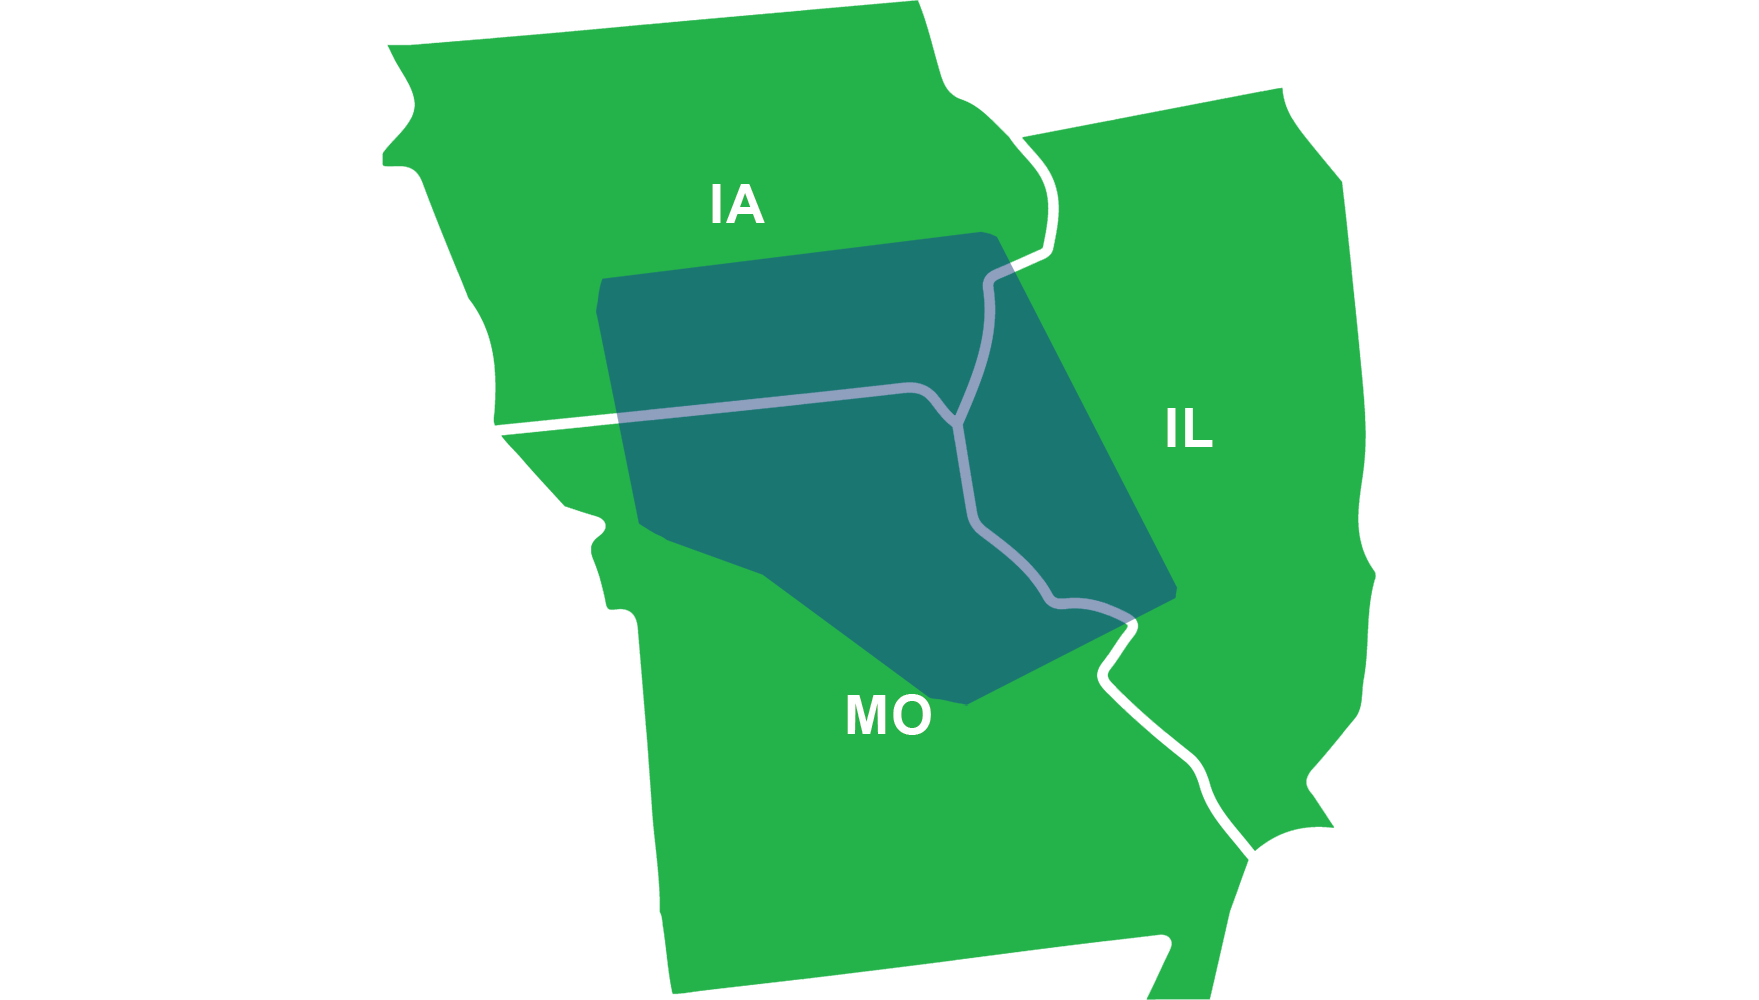 Cumberland Buildings by area - IA, IL, MO - Abbreviated.png